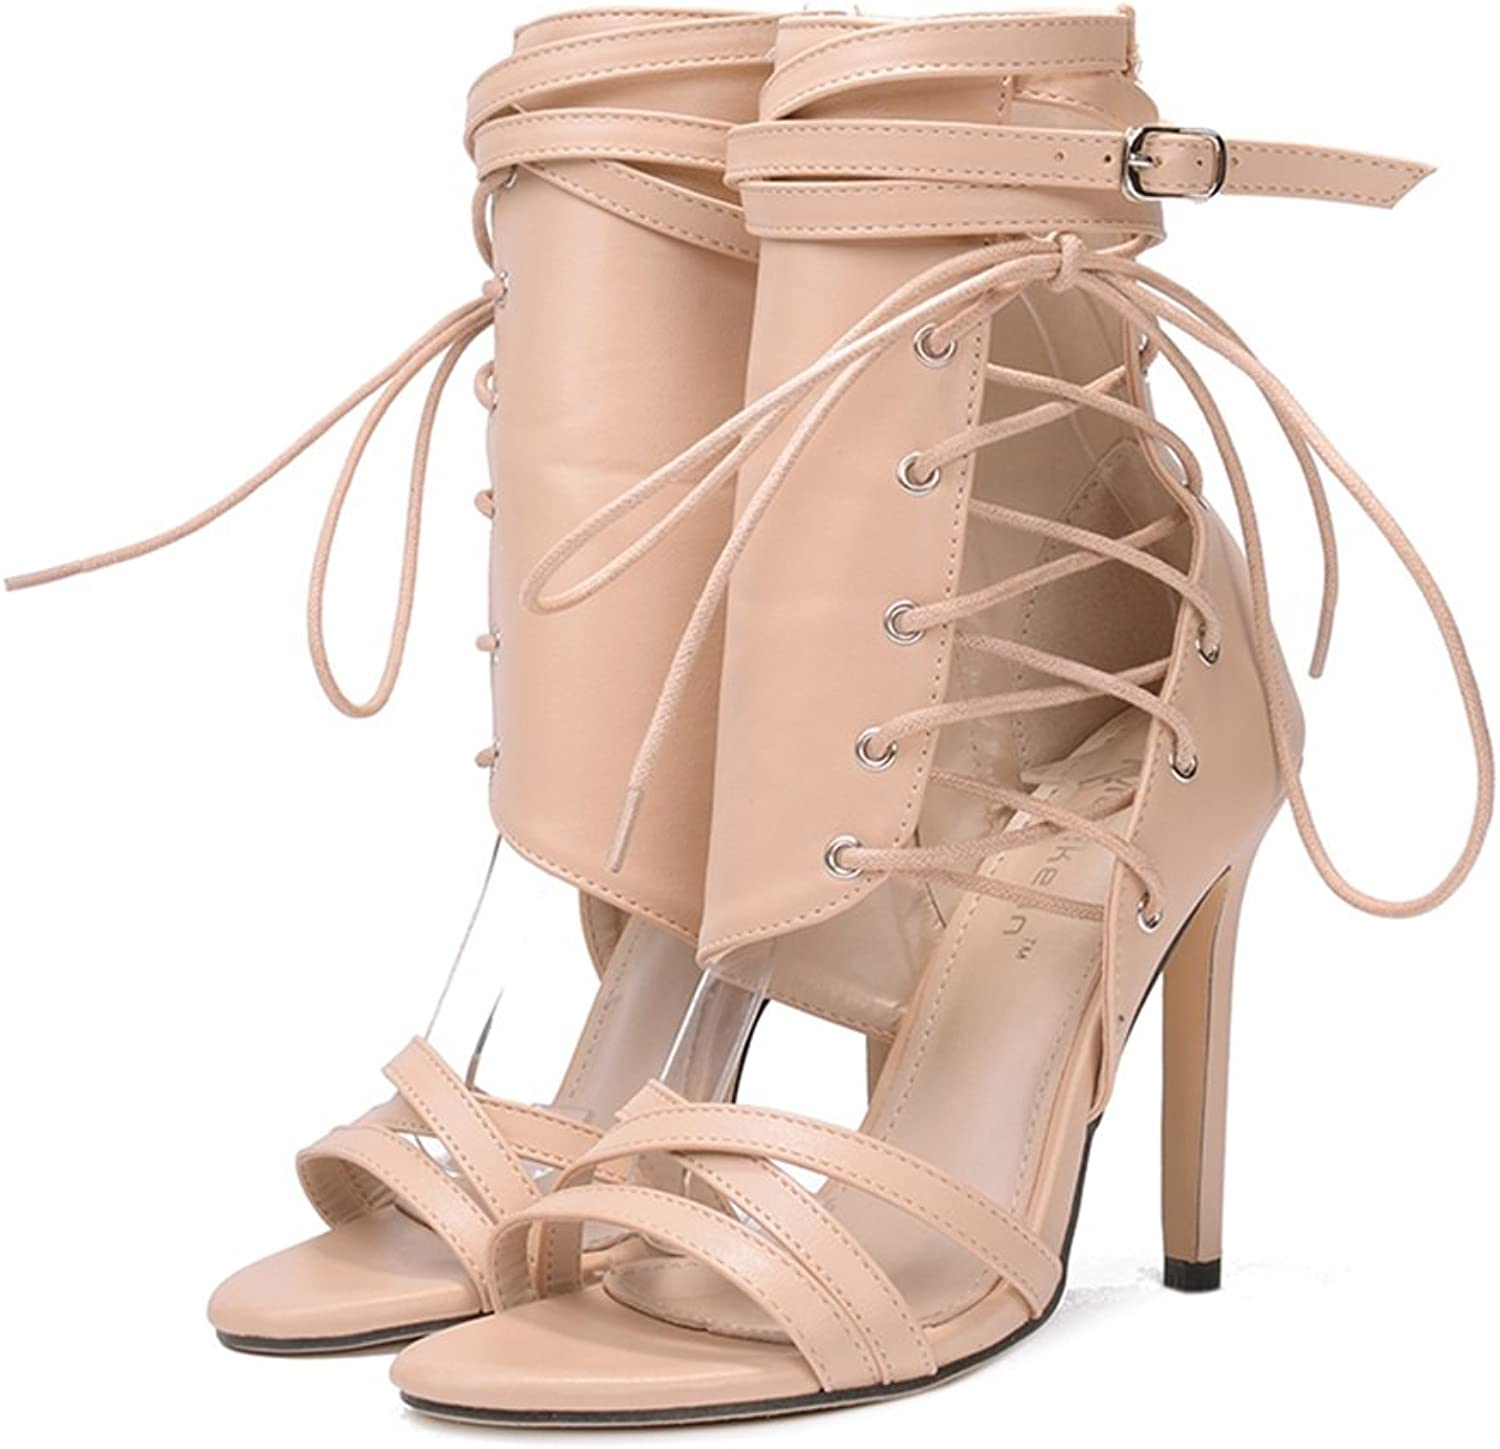 Women's shoes PU Summer Stiletto Heel Lace-up Strappy Club shoes Roman shoes for Party & Evening Dress